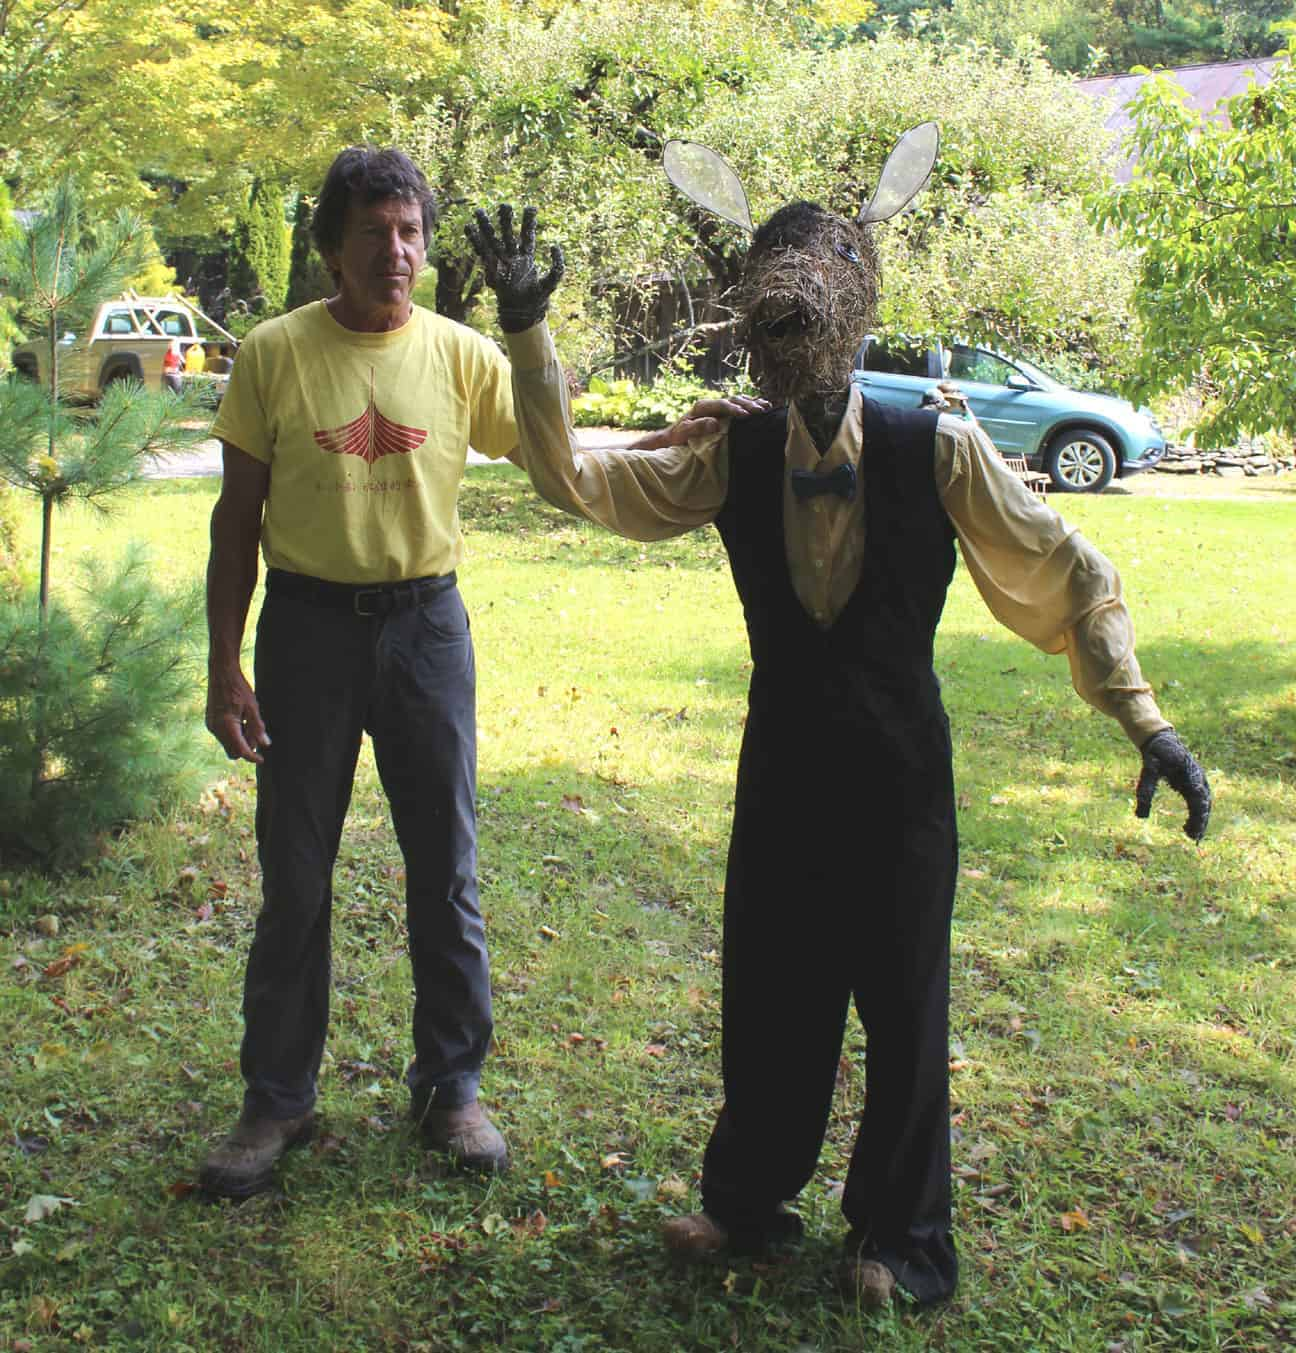 Nick Bottom, left, a character in Shakespeare's A Midsummer Night's Dream, stands in Plainfield (hint) beside Sculptor Michael Melle, who created these hay animals, human and domestic. Photo by Thom Smith